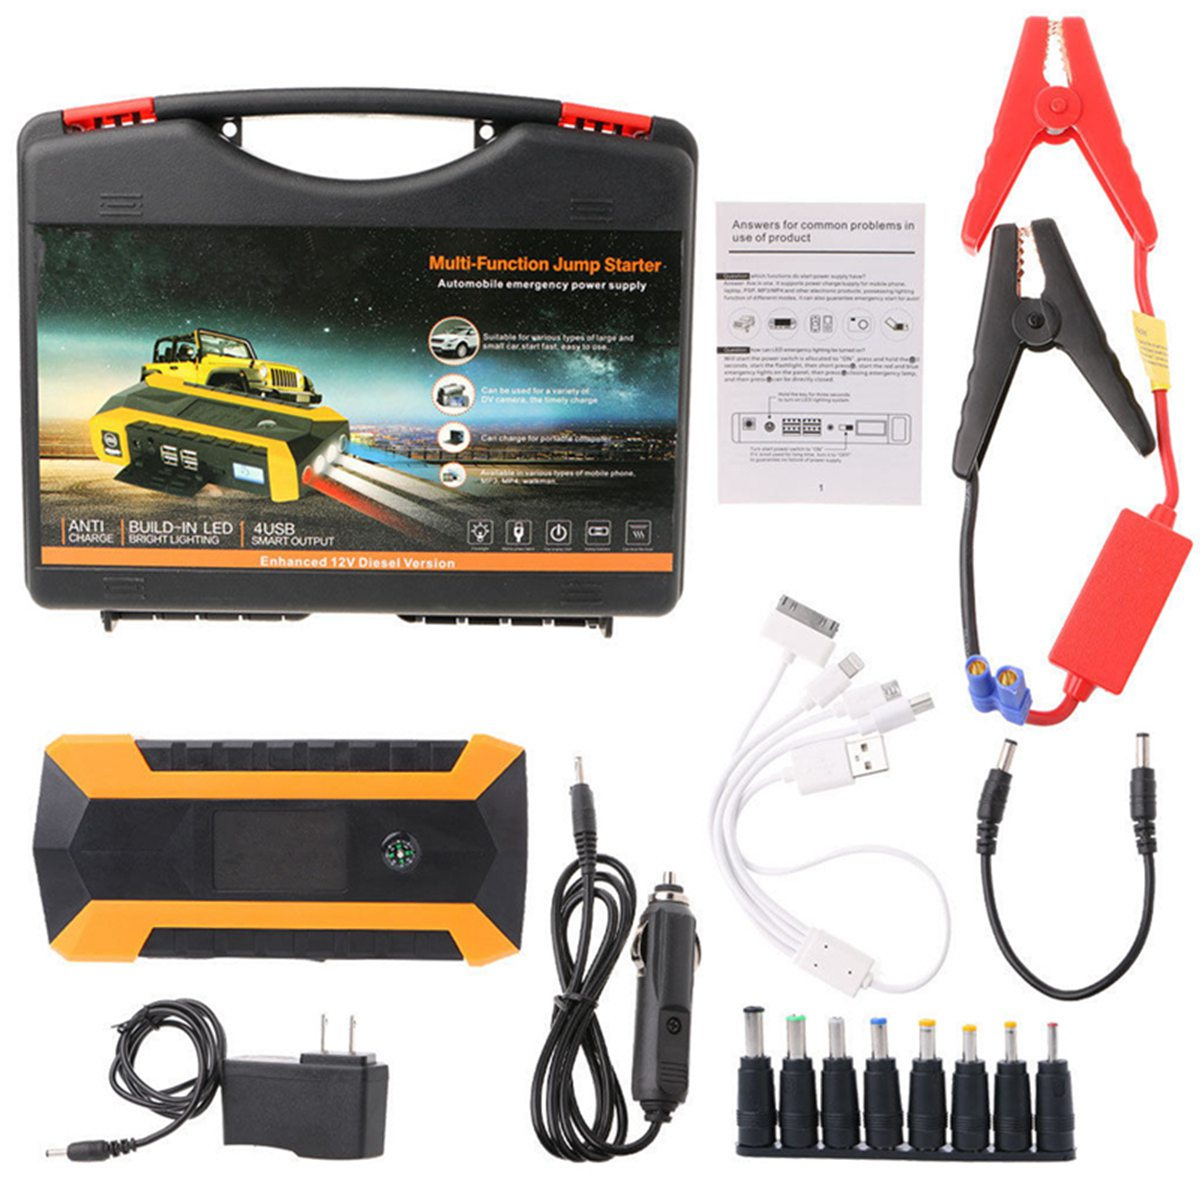 Practical 89800mAh 12V 4USB Car Battery Charger Starting Car Jump Starter Booster Power Bank Tool Kit For Auto Starting Device 89800mah car jump starter 12v 4usb 600a portable car battery booster charger booster power bank starting device car starter